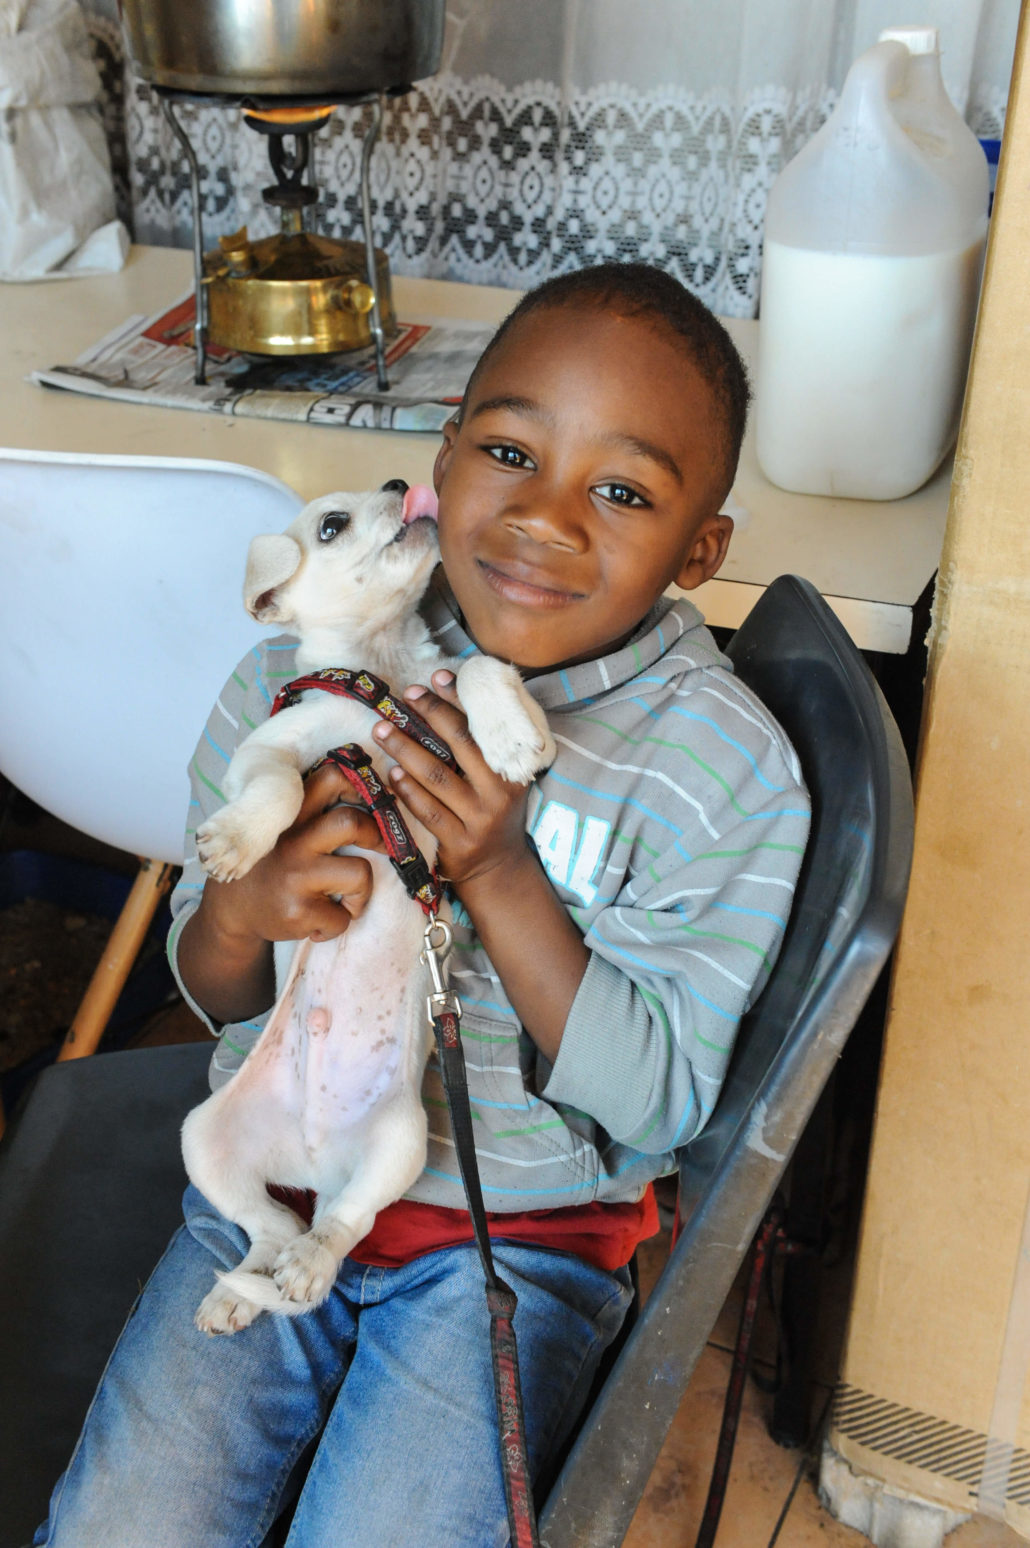 Boy enjoying his puppy at Tumi's home in Alexandra township